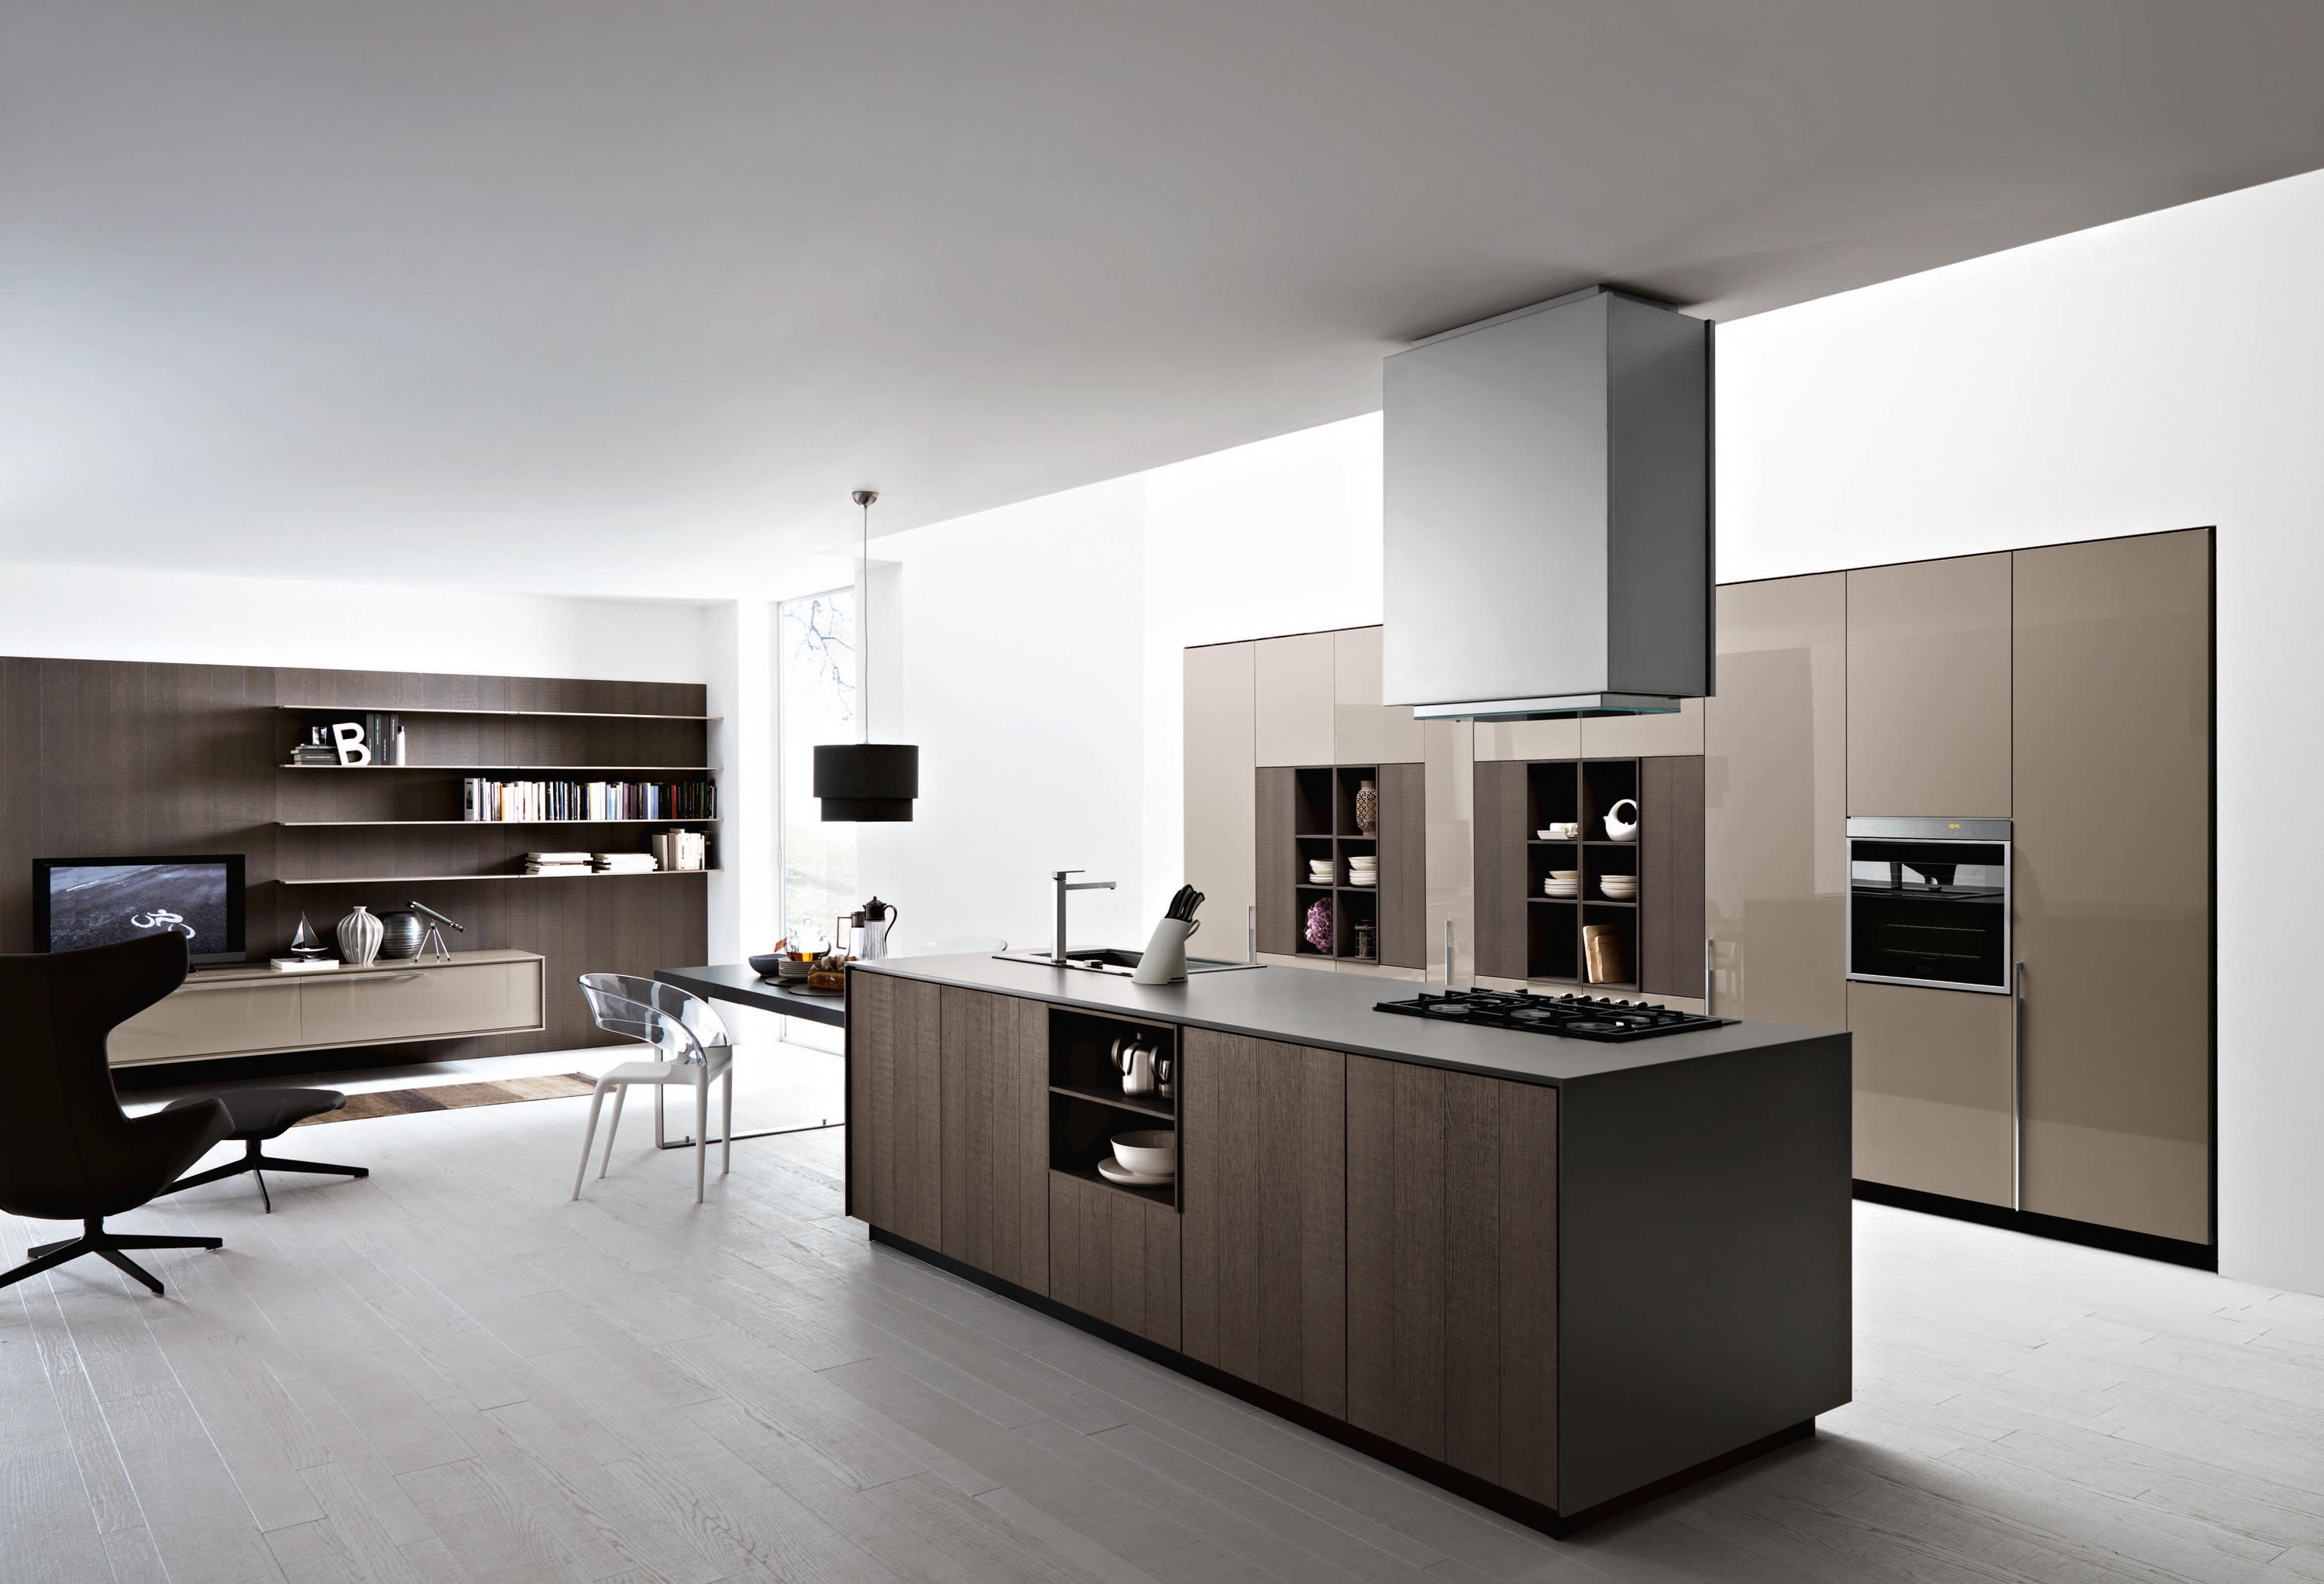 Kalea composition 3 fitted kitchens from cesar for Cesar arredamenti